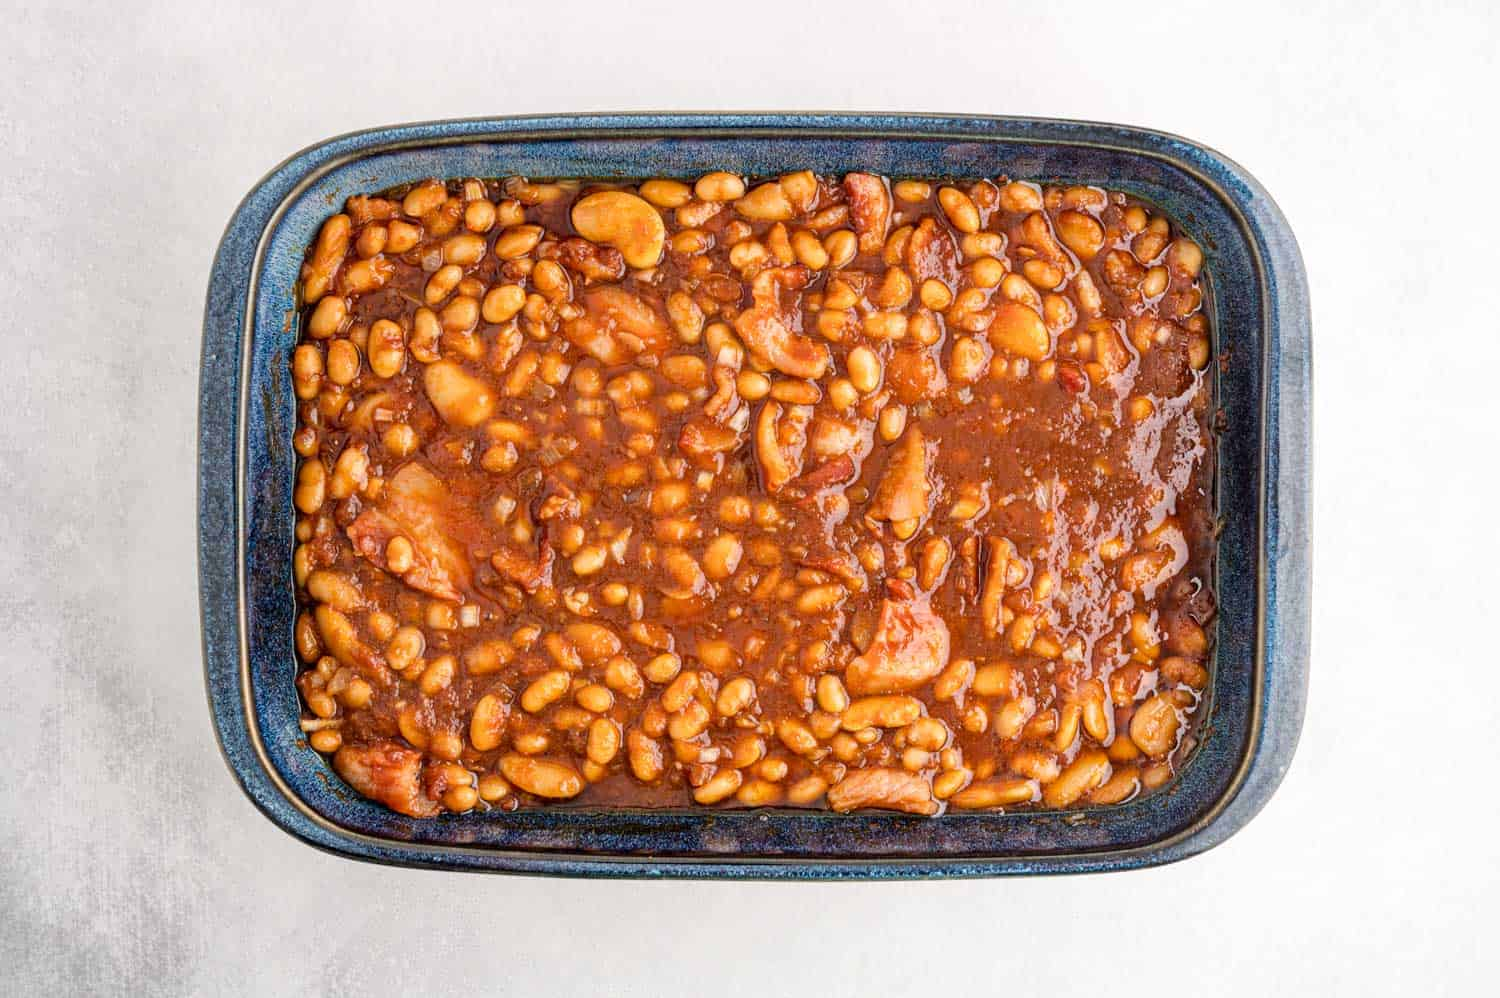 Uncooked beans in a blue casserole dish.